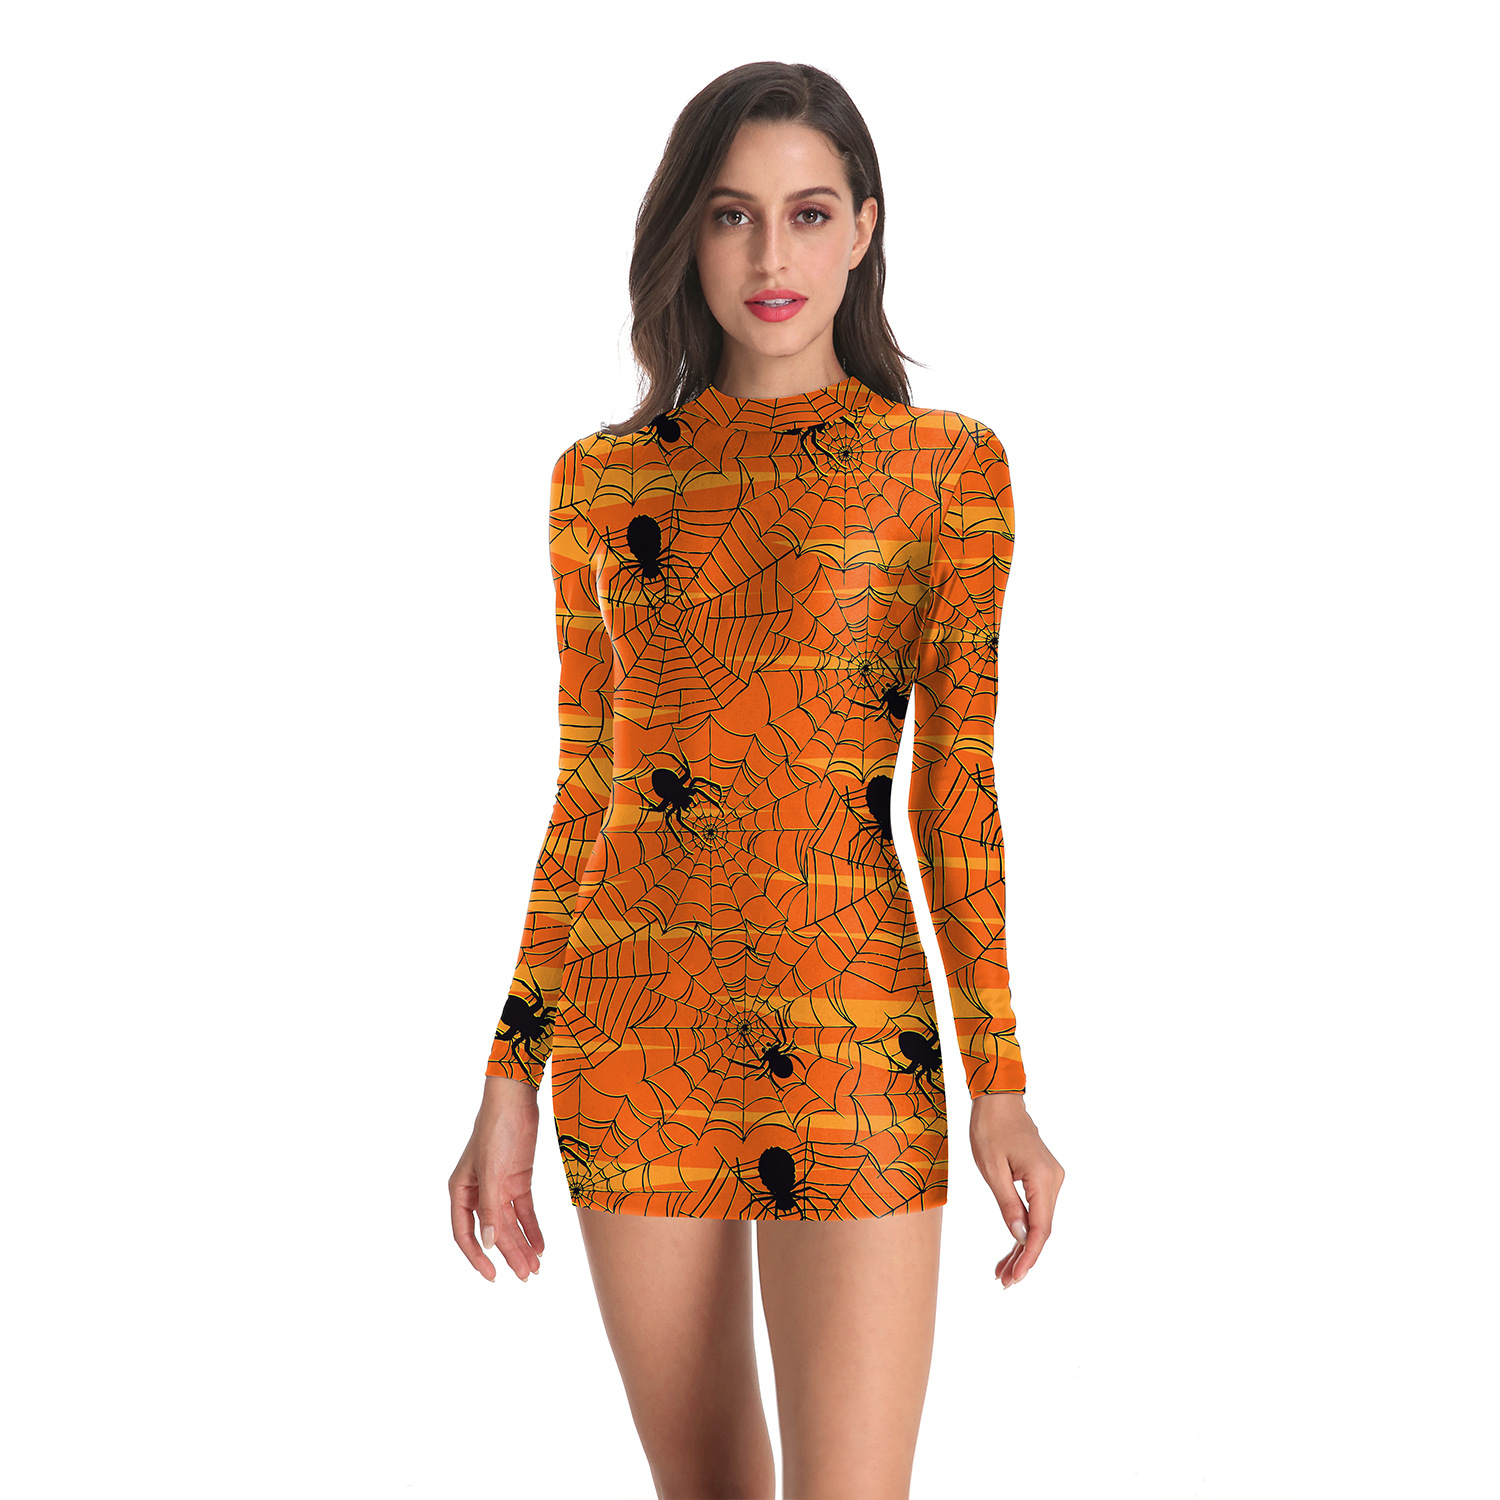 Wish Hot Selling Halloween Costume Europe And America Amazon 3D Digital Printing Spider Slim Fit Long-sleeved Dress Women's